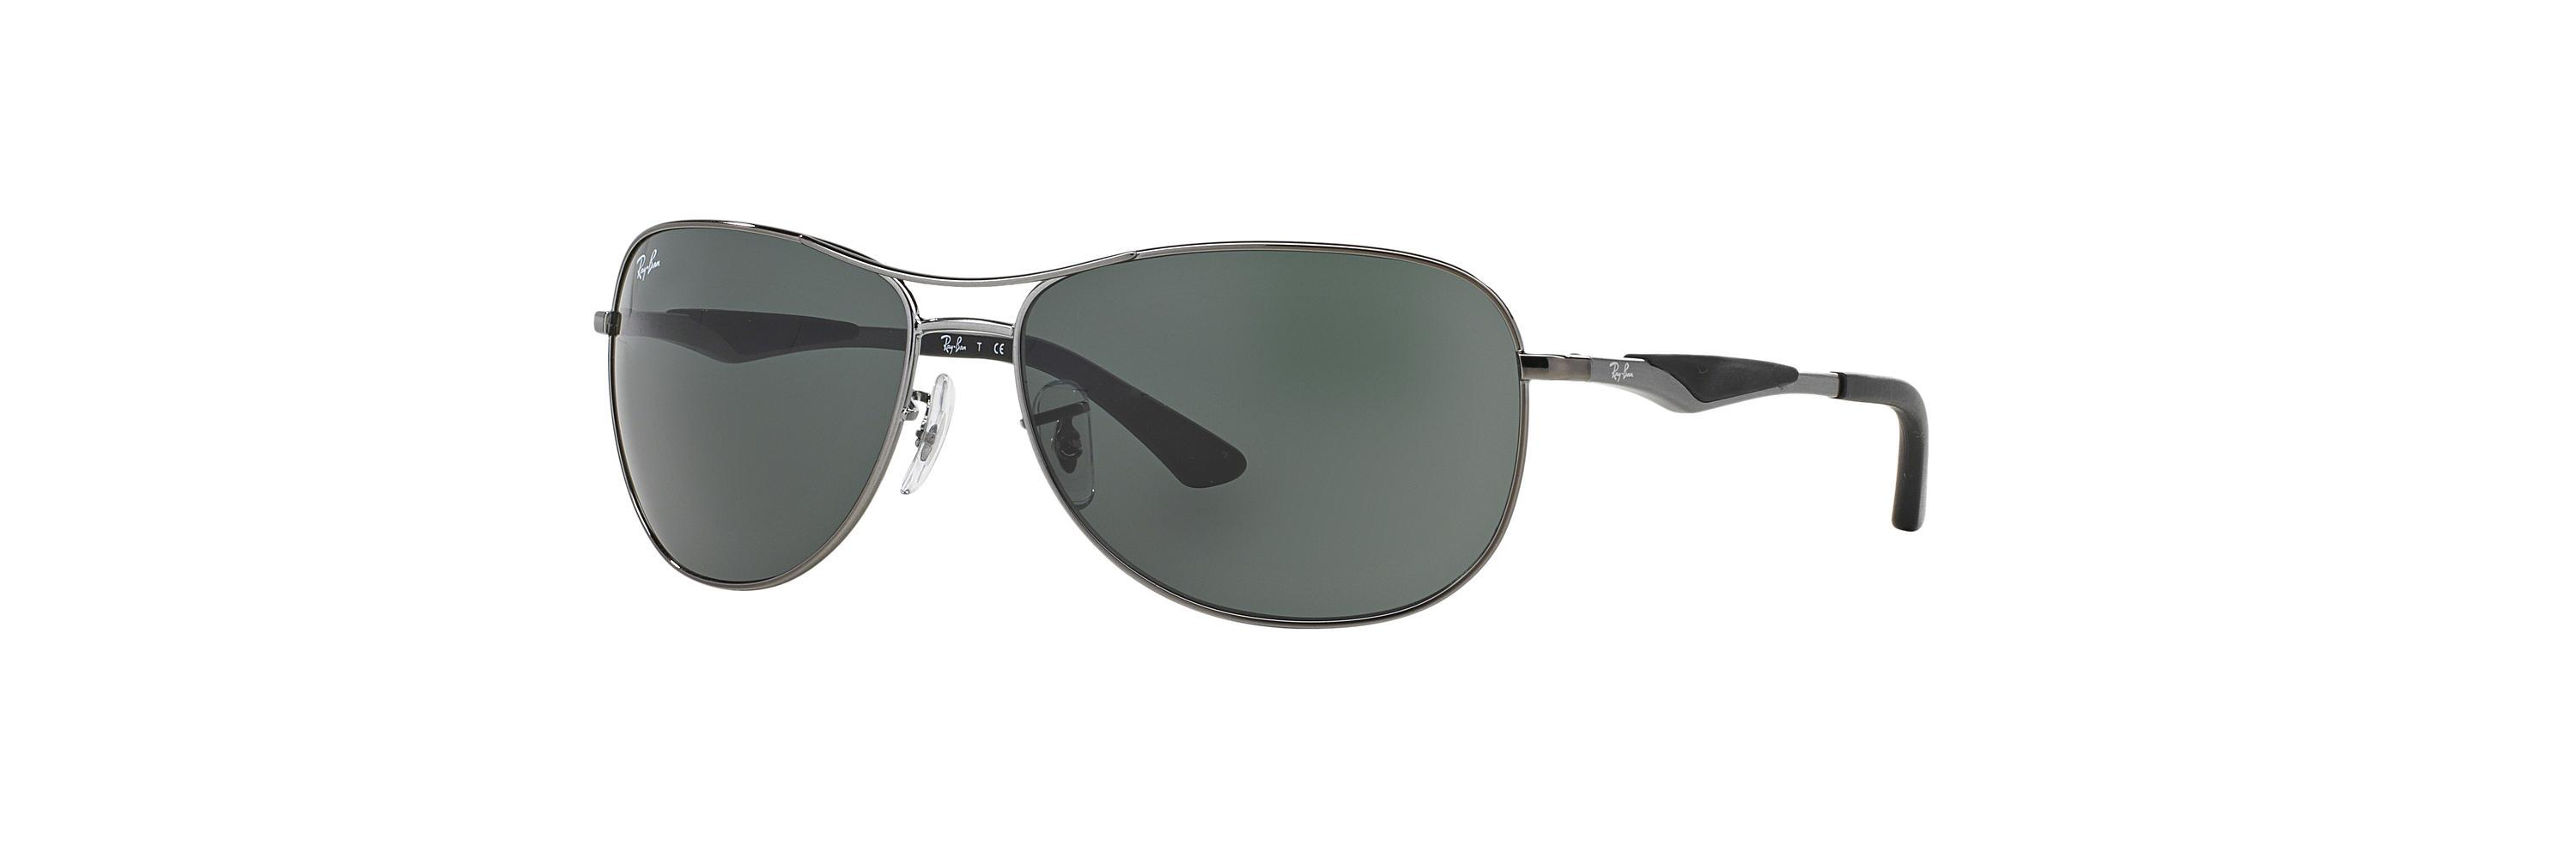 3f13e6963bd Lyst - Ray-Ban Rb3519 62 in Green